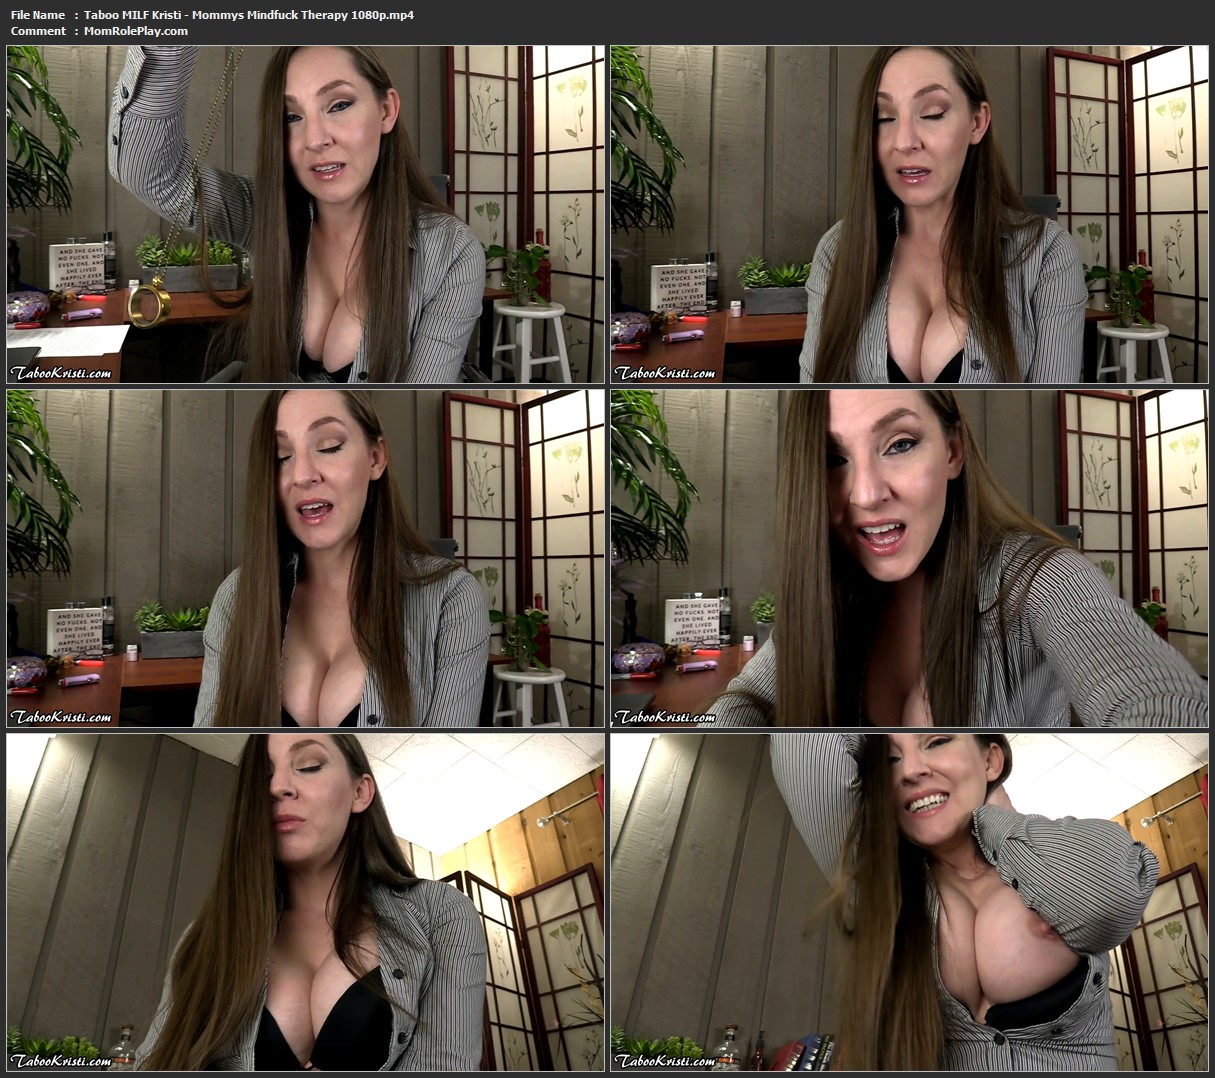 Taboo MILF Kristi - Mommy's Mindfuck Therapy